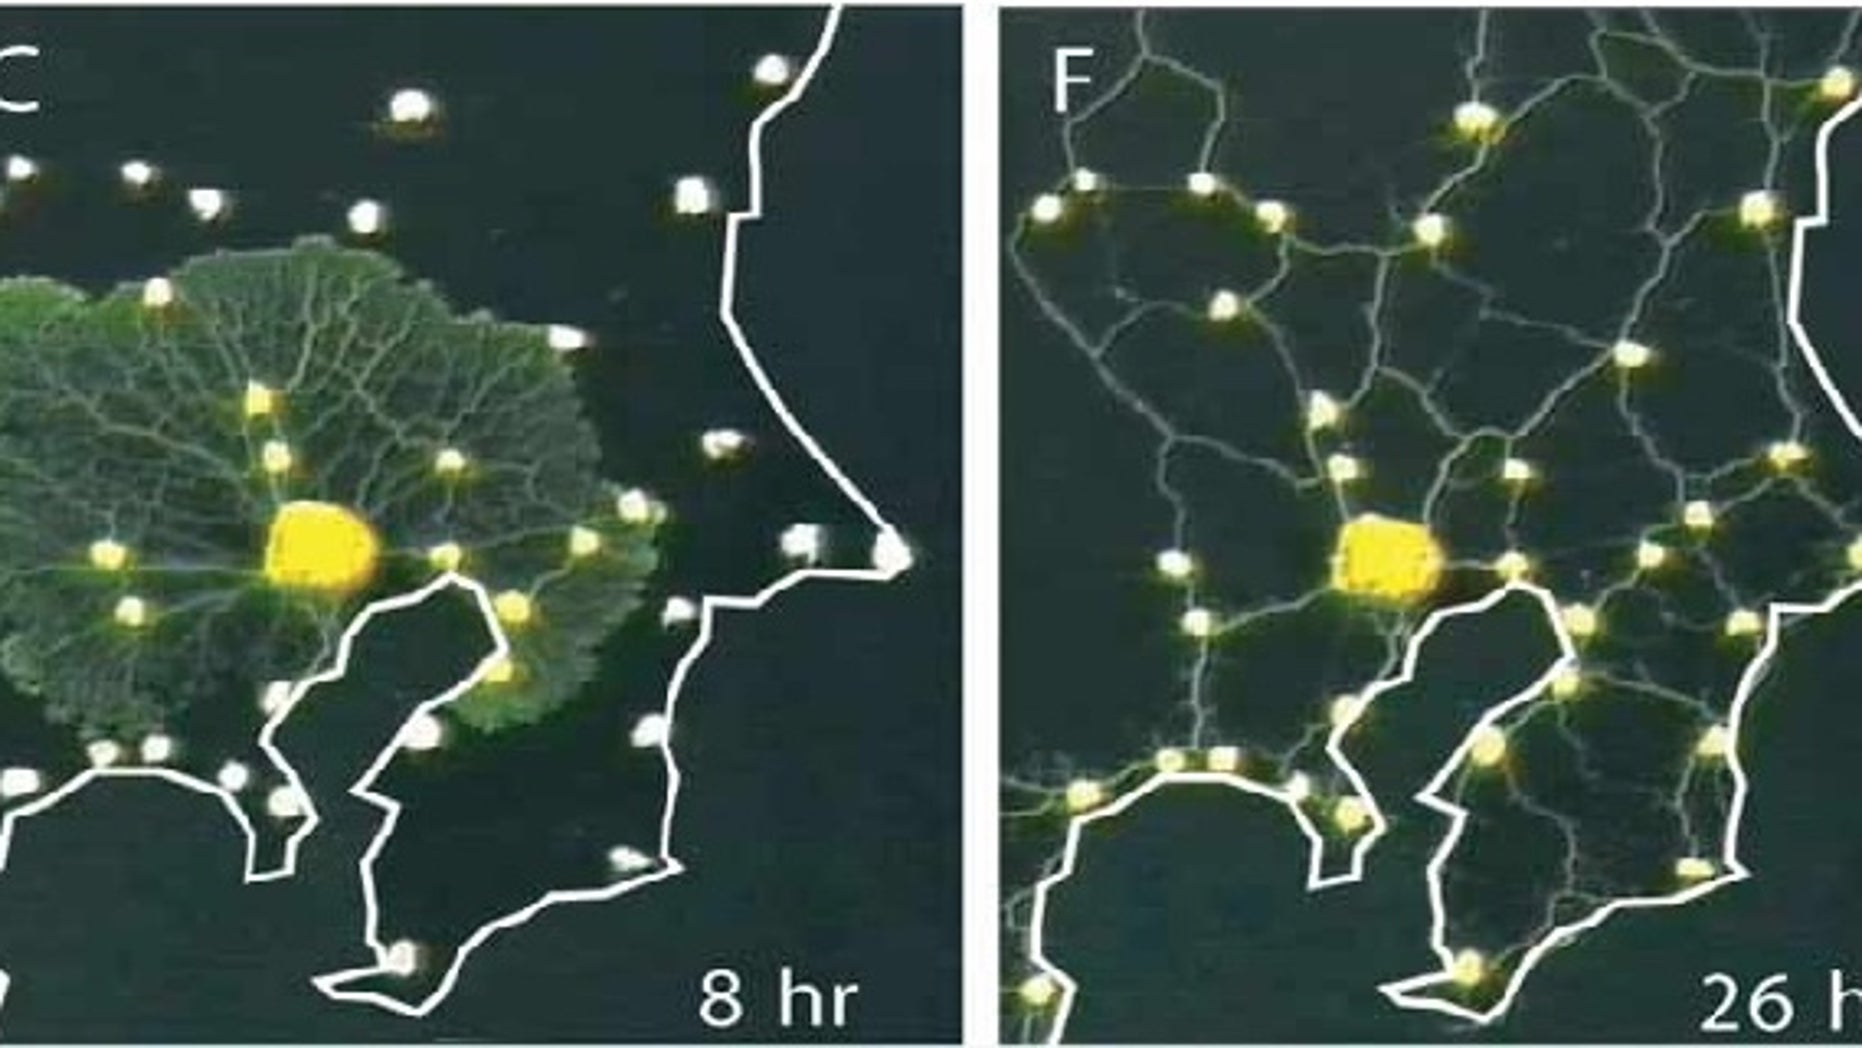 In a recent experiment, slime mold grew out from a food source and colonized each of the other food sources. Eventually, it resolved into a network of tubes, much like the Tokyo rail system. Credit: Science/AAAS